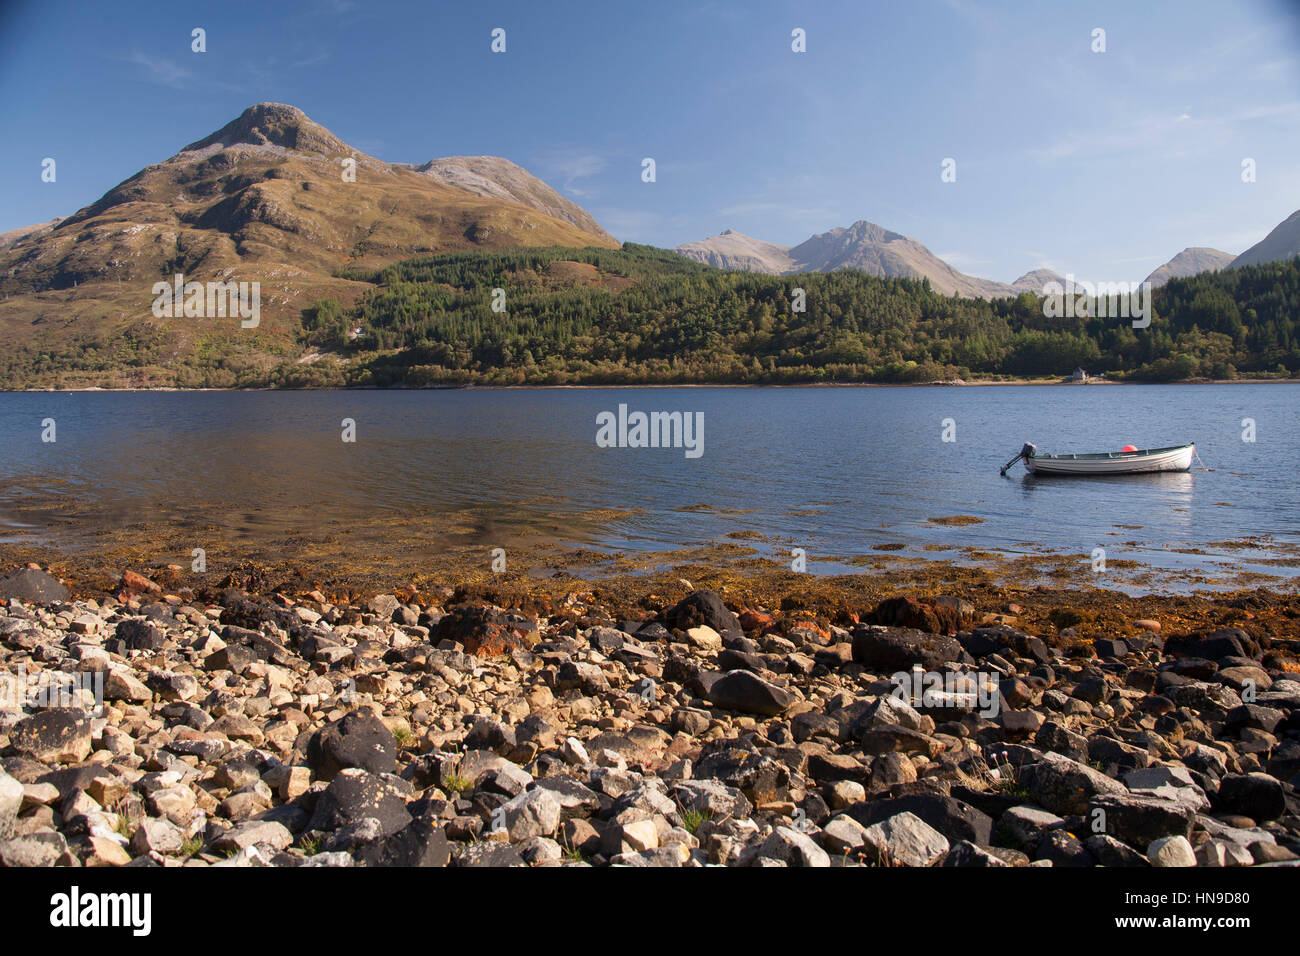 Little boat at loch Leven, Near Ballachulish, Glencoe, Scottish Highlands, Scotland, with the Pap of Glen coe at Stock Photo